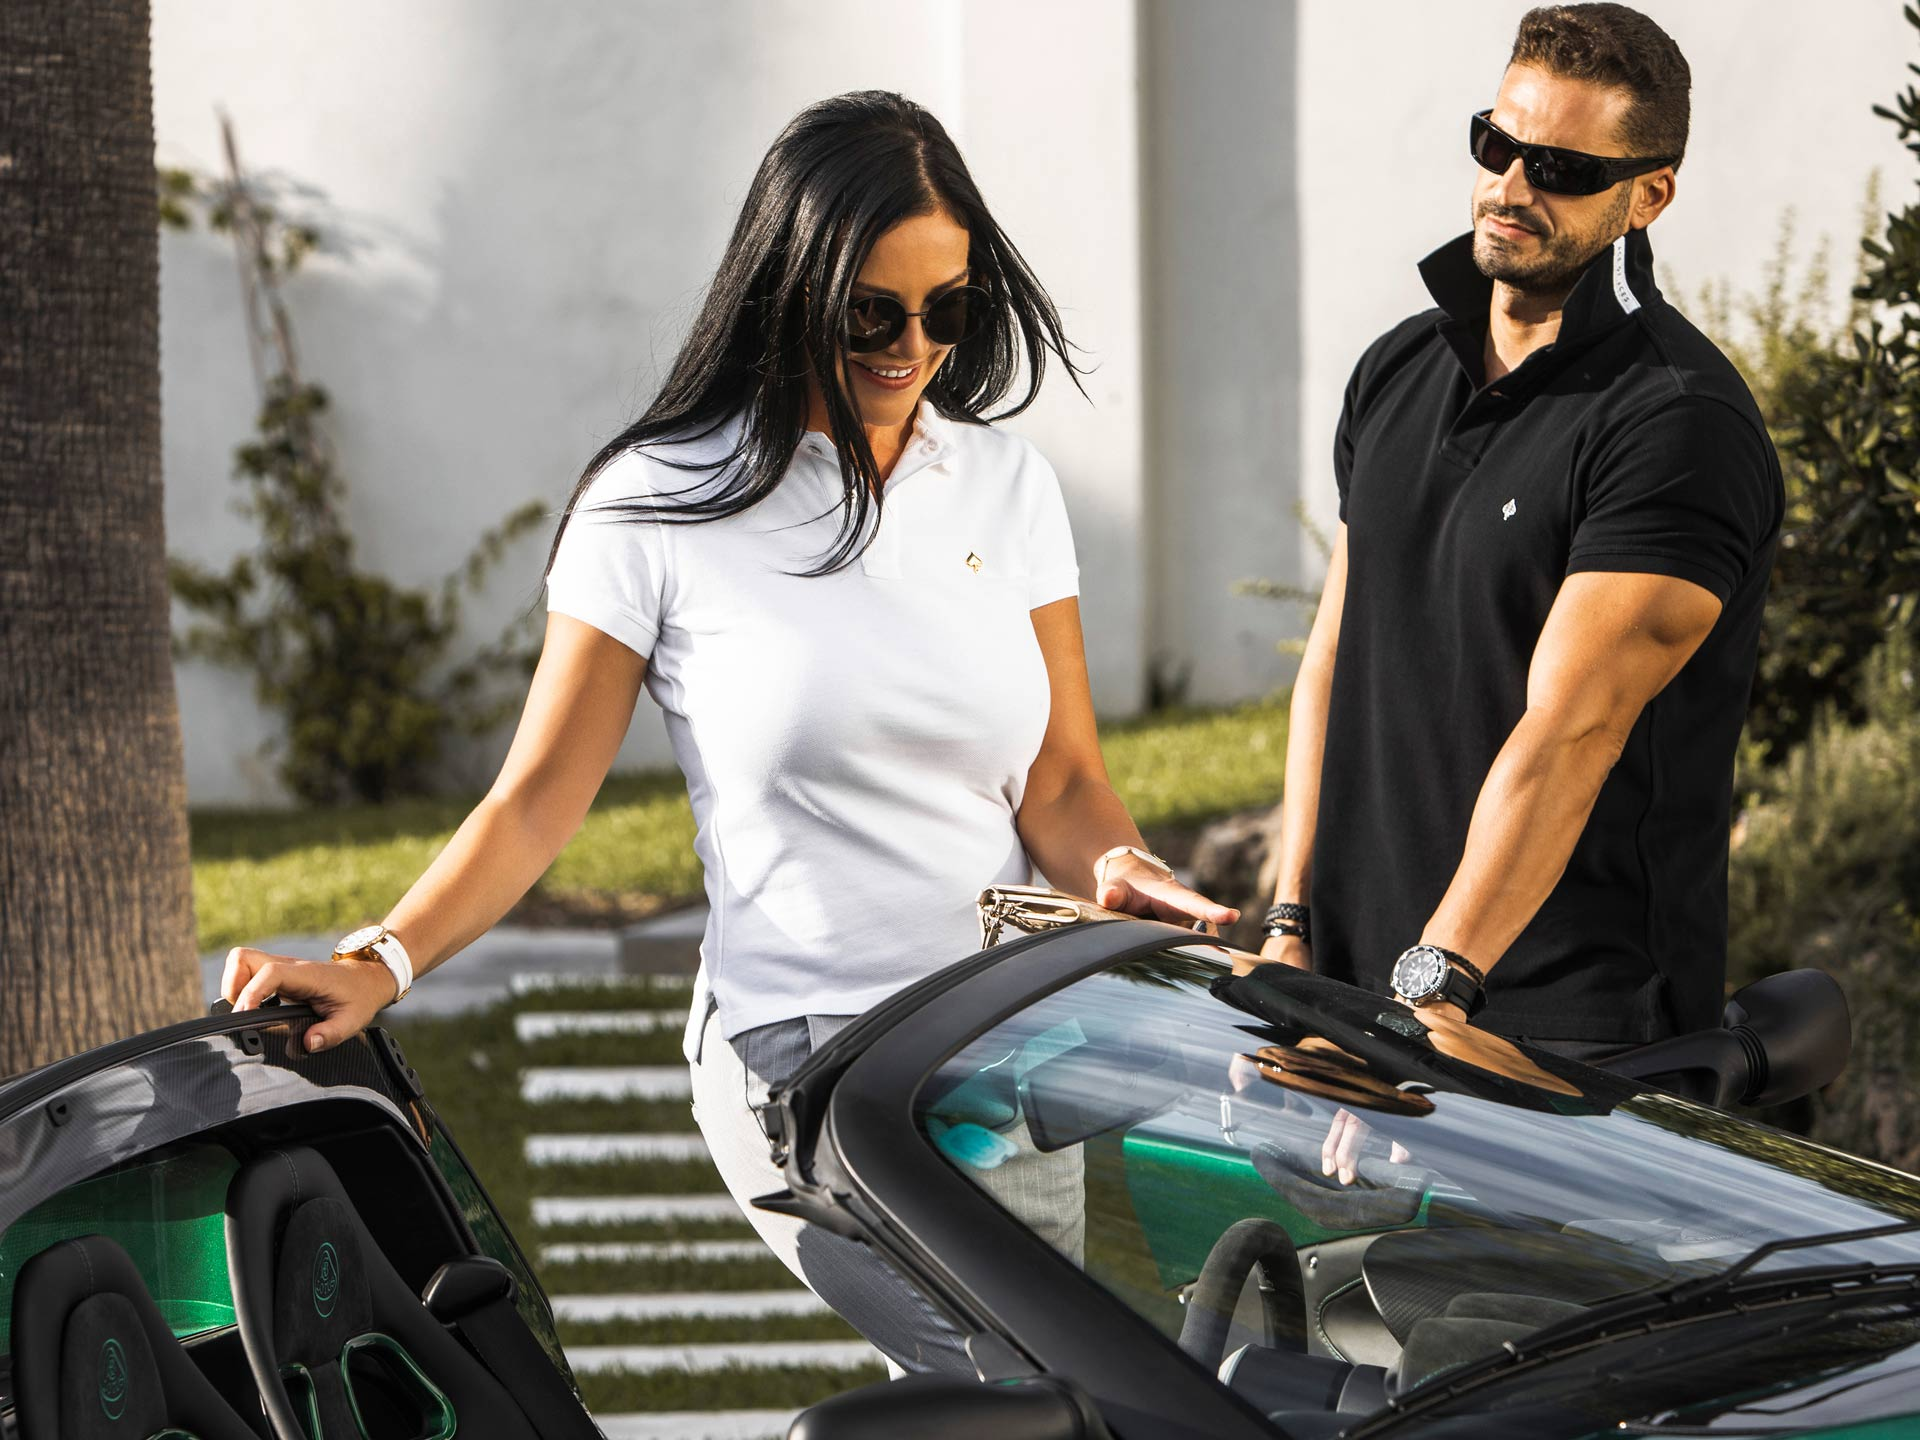 Natasha Romanov and Magna Cars with their Limited Edition Ace of Aces polo shirts